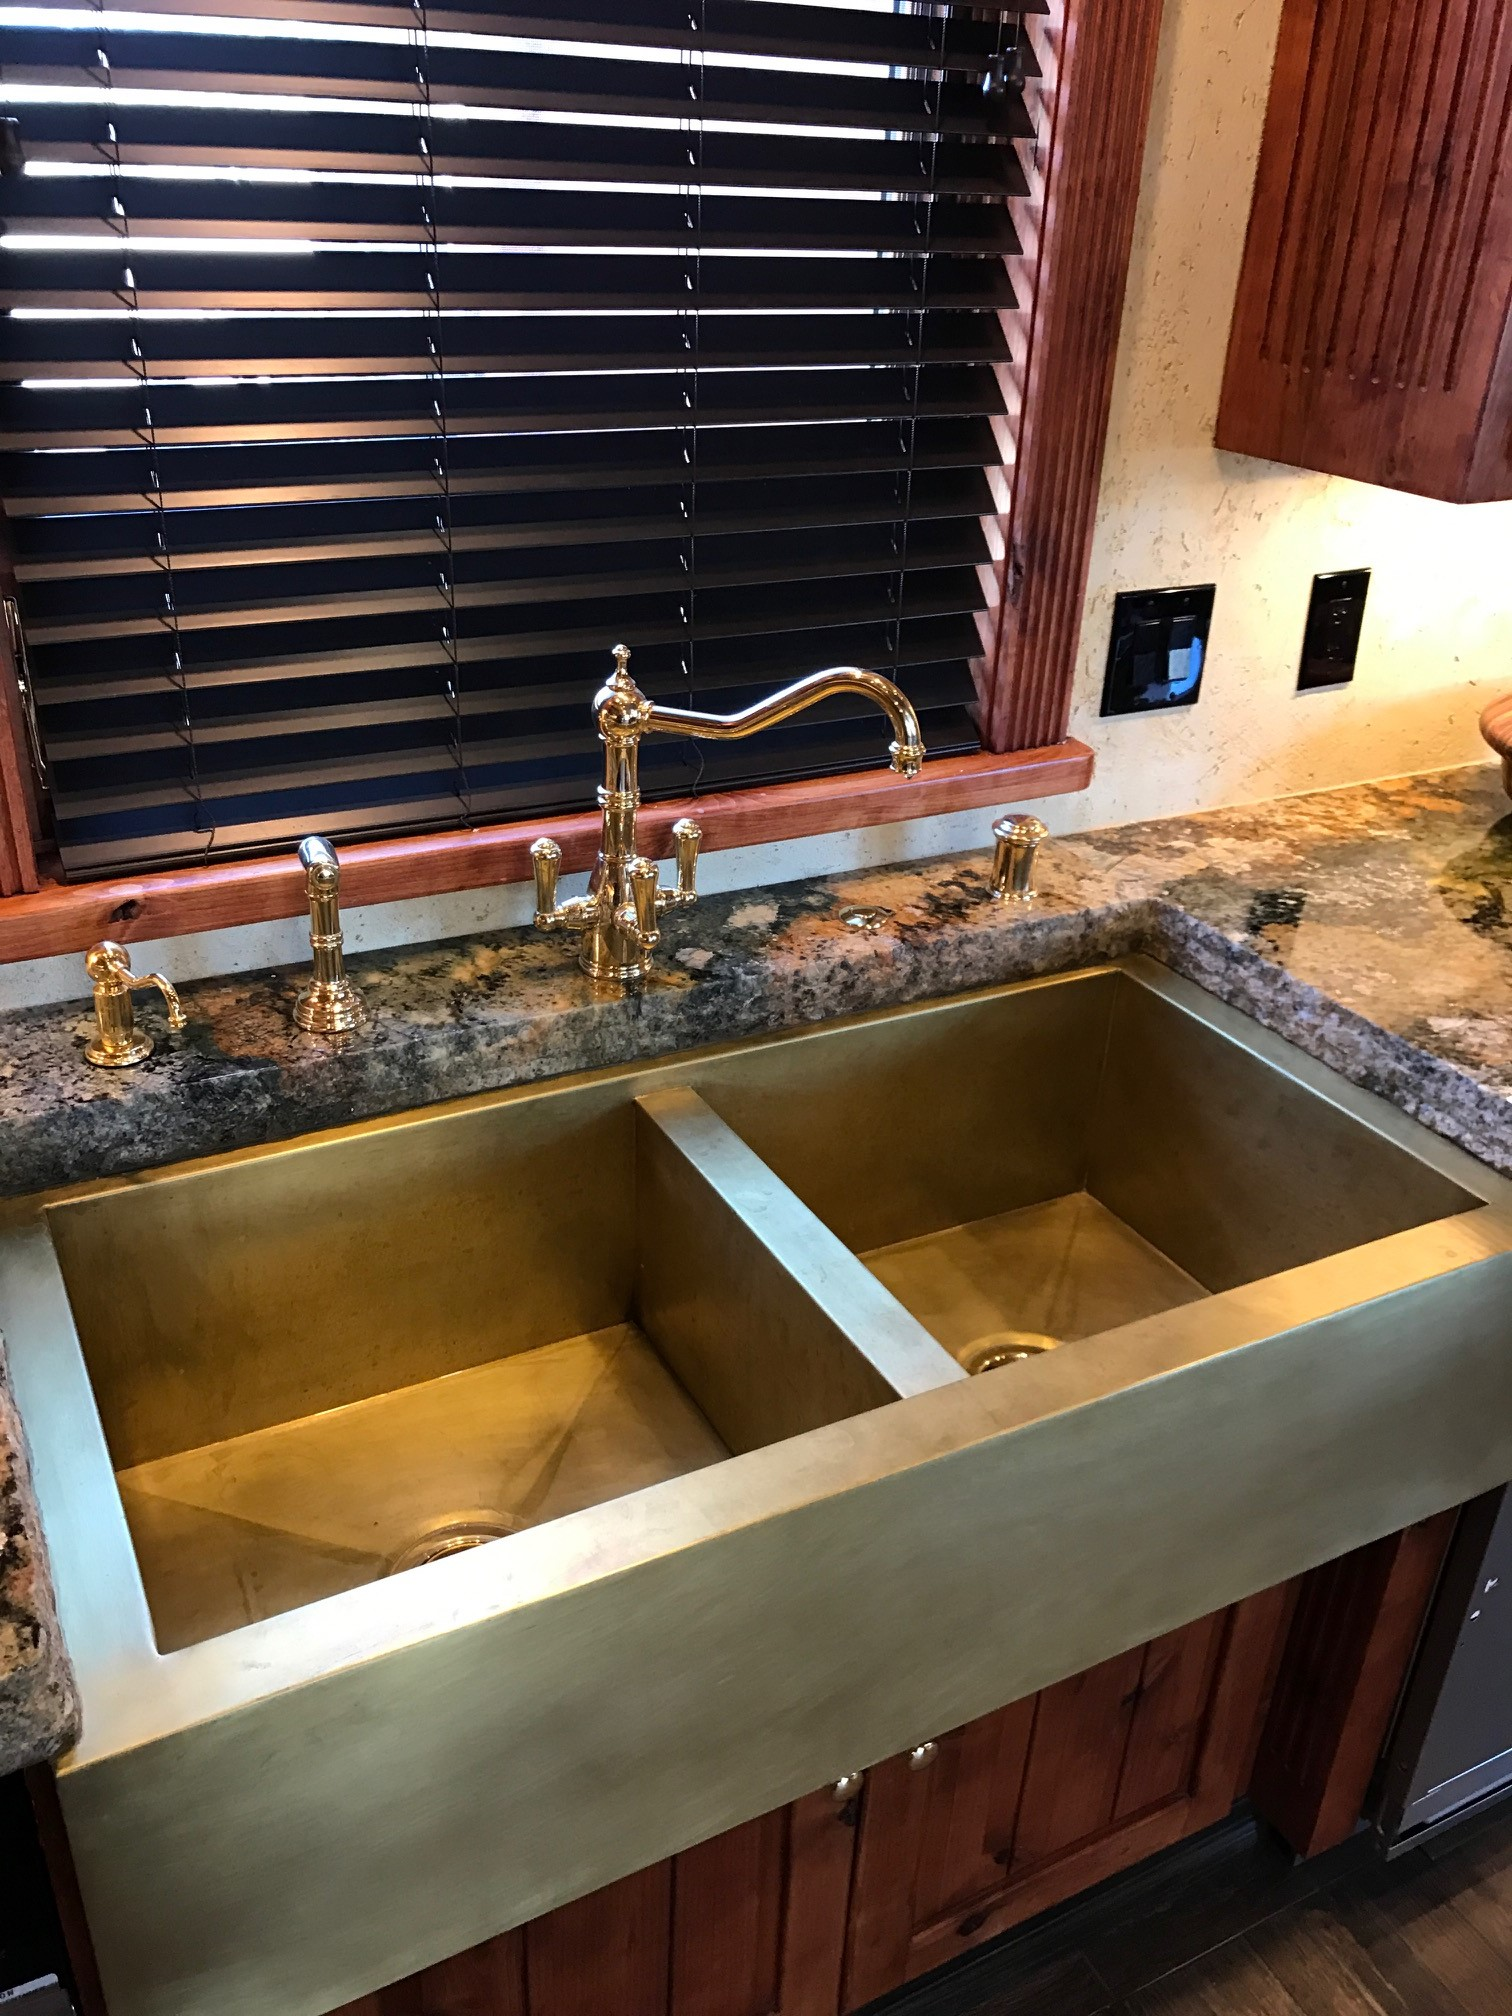 Double Basin Smooth Apron Farmhouse Sink in Burnished Brass